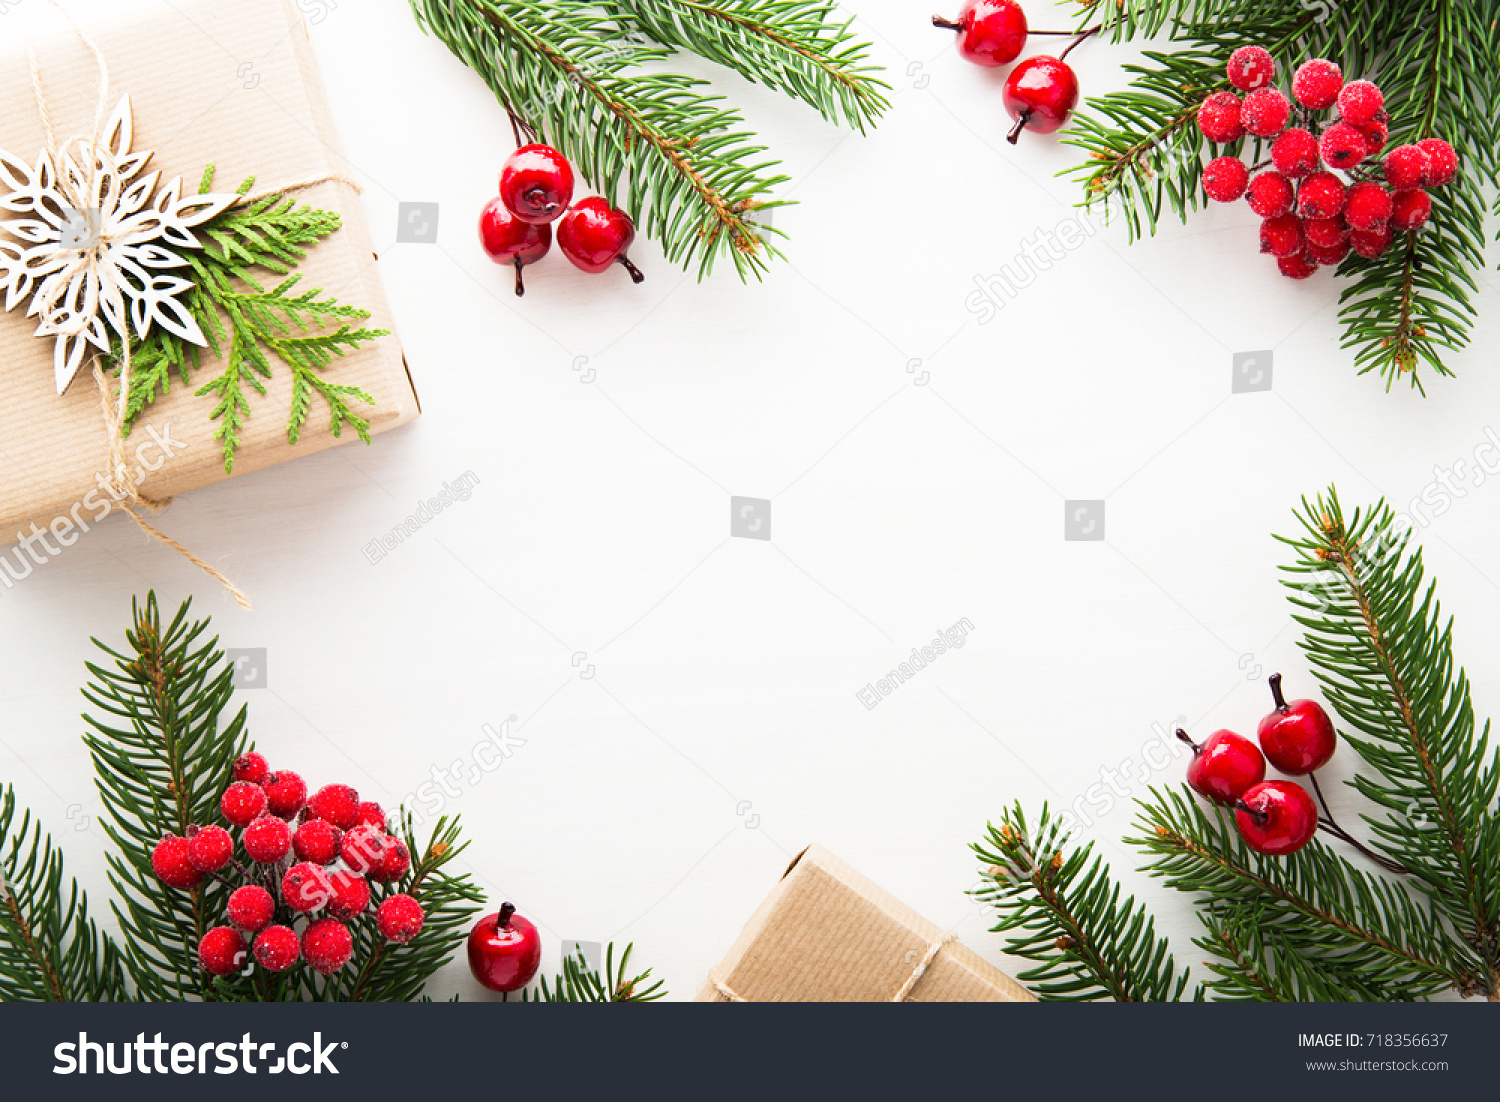 Red Christmas Background With Xmas Tree And Gifts: Christmas Background Xmas Tree Gift Boxes Stock Photo